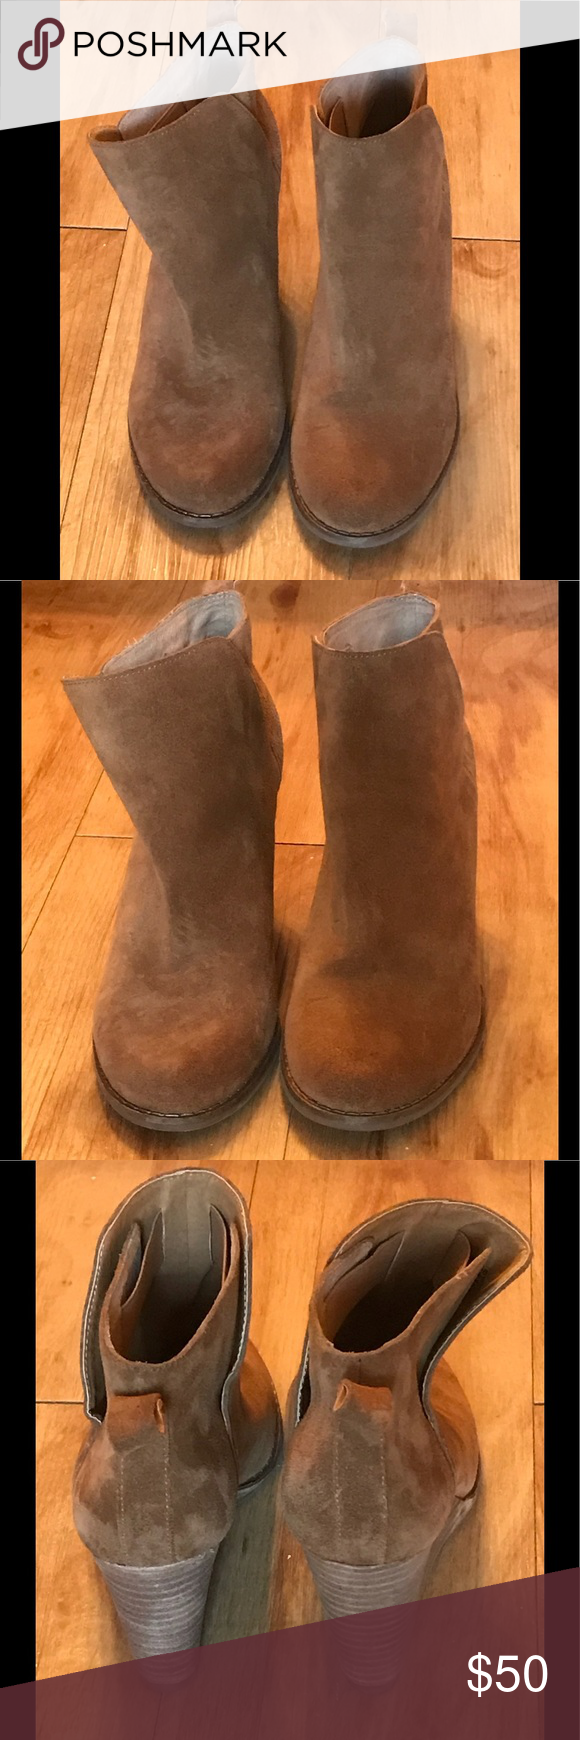 """Lucky Brand Wedge Booties (Honey) Lucky Brand Wedge Booties Step up your look with these comfortable stacked wedge booties designed in genuine suede with a western-inspired pull tab.  Material: Suede Heel Height: 3.25"""" Fit: True to Size Shoe Width: Medium Lucky Brand Shoes Ankle Boots & Booties"""